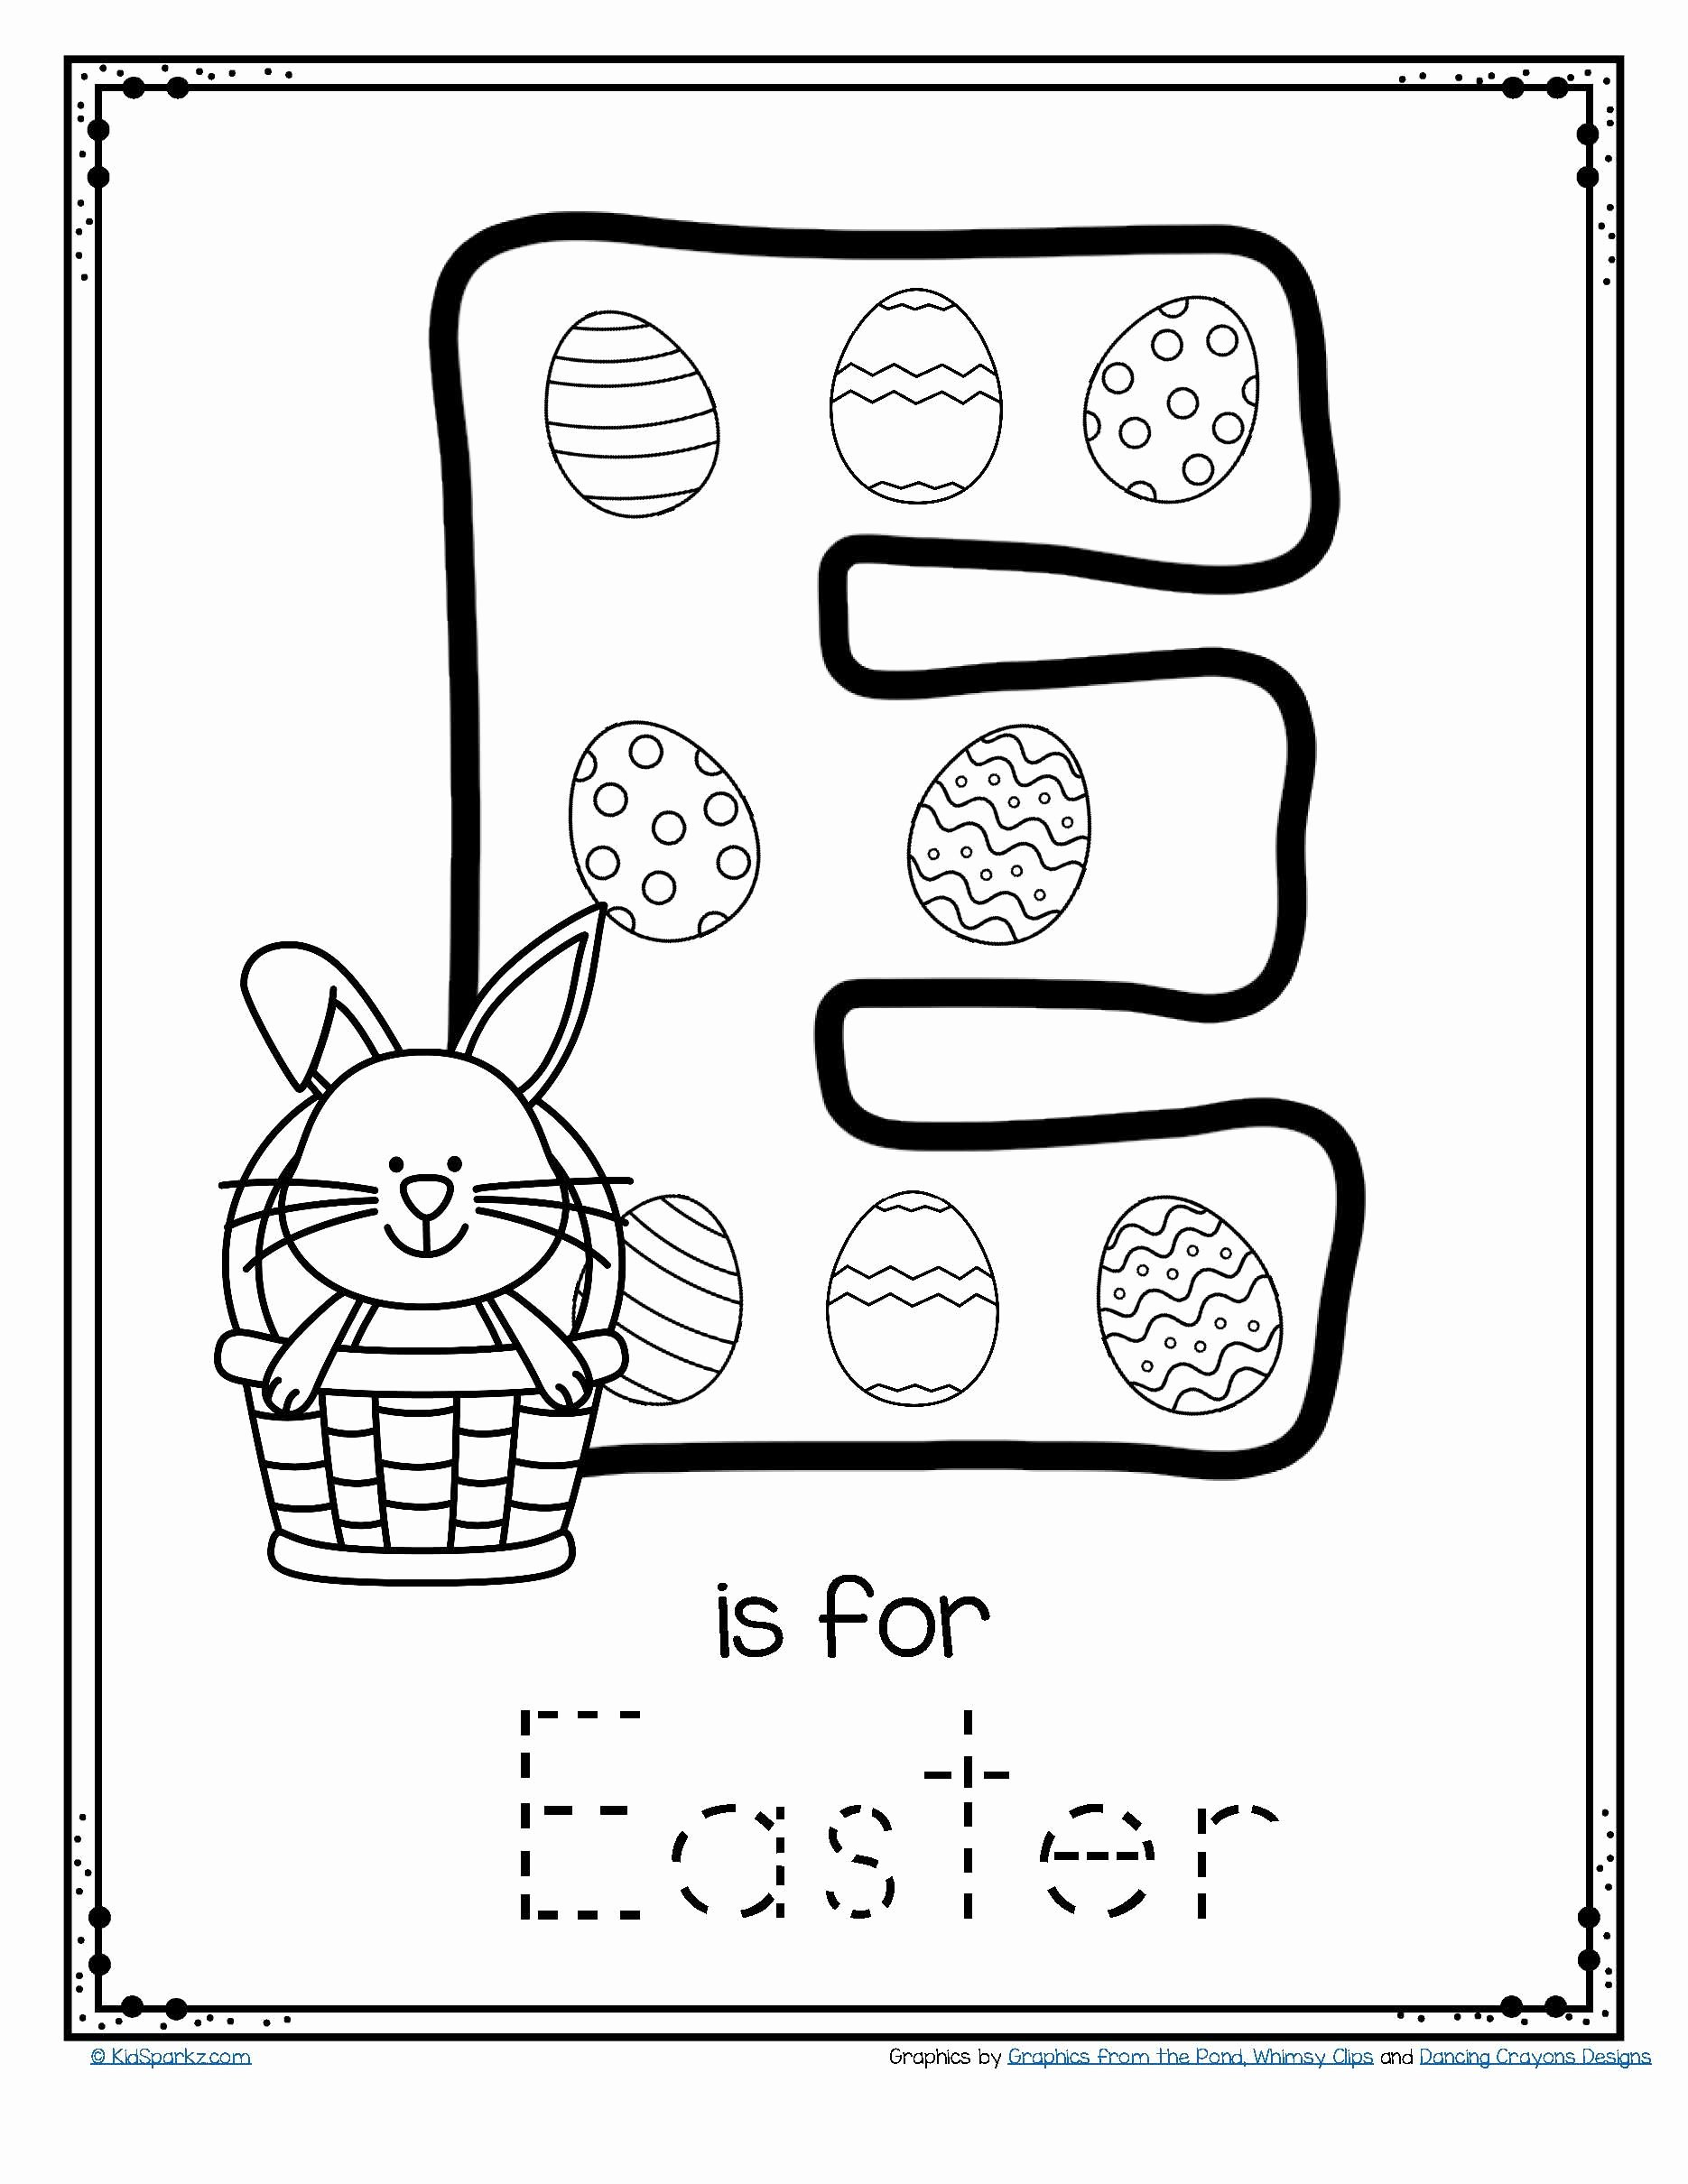 Printable Easter Worksheets for Preschoolers Fresh Letter E is for Easter Trace and Color Printable Free